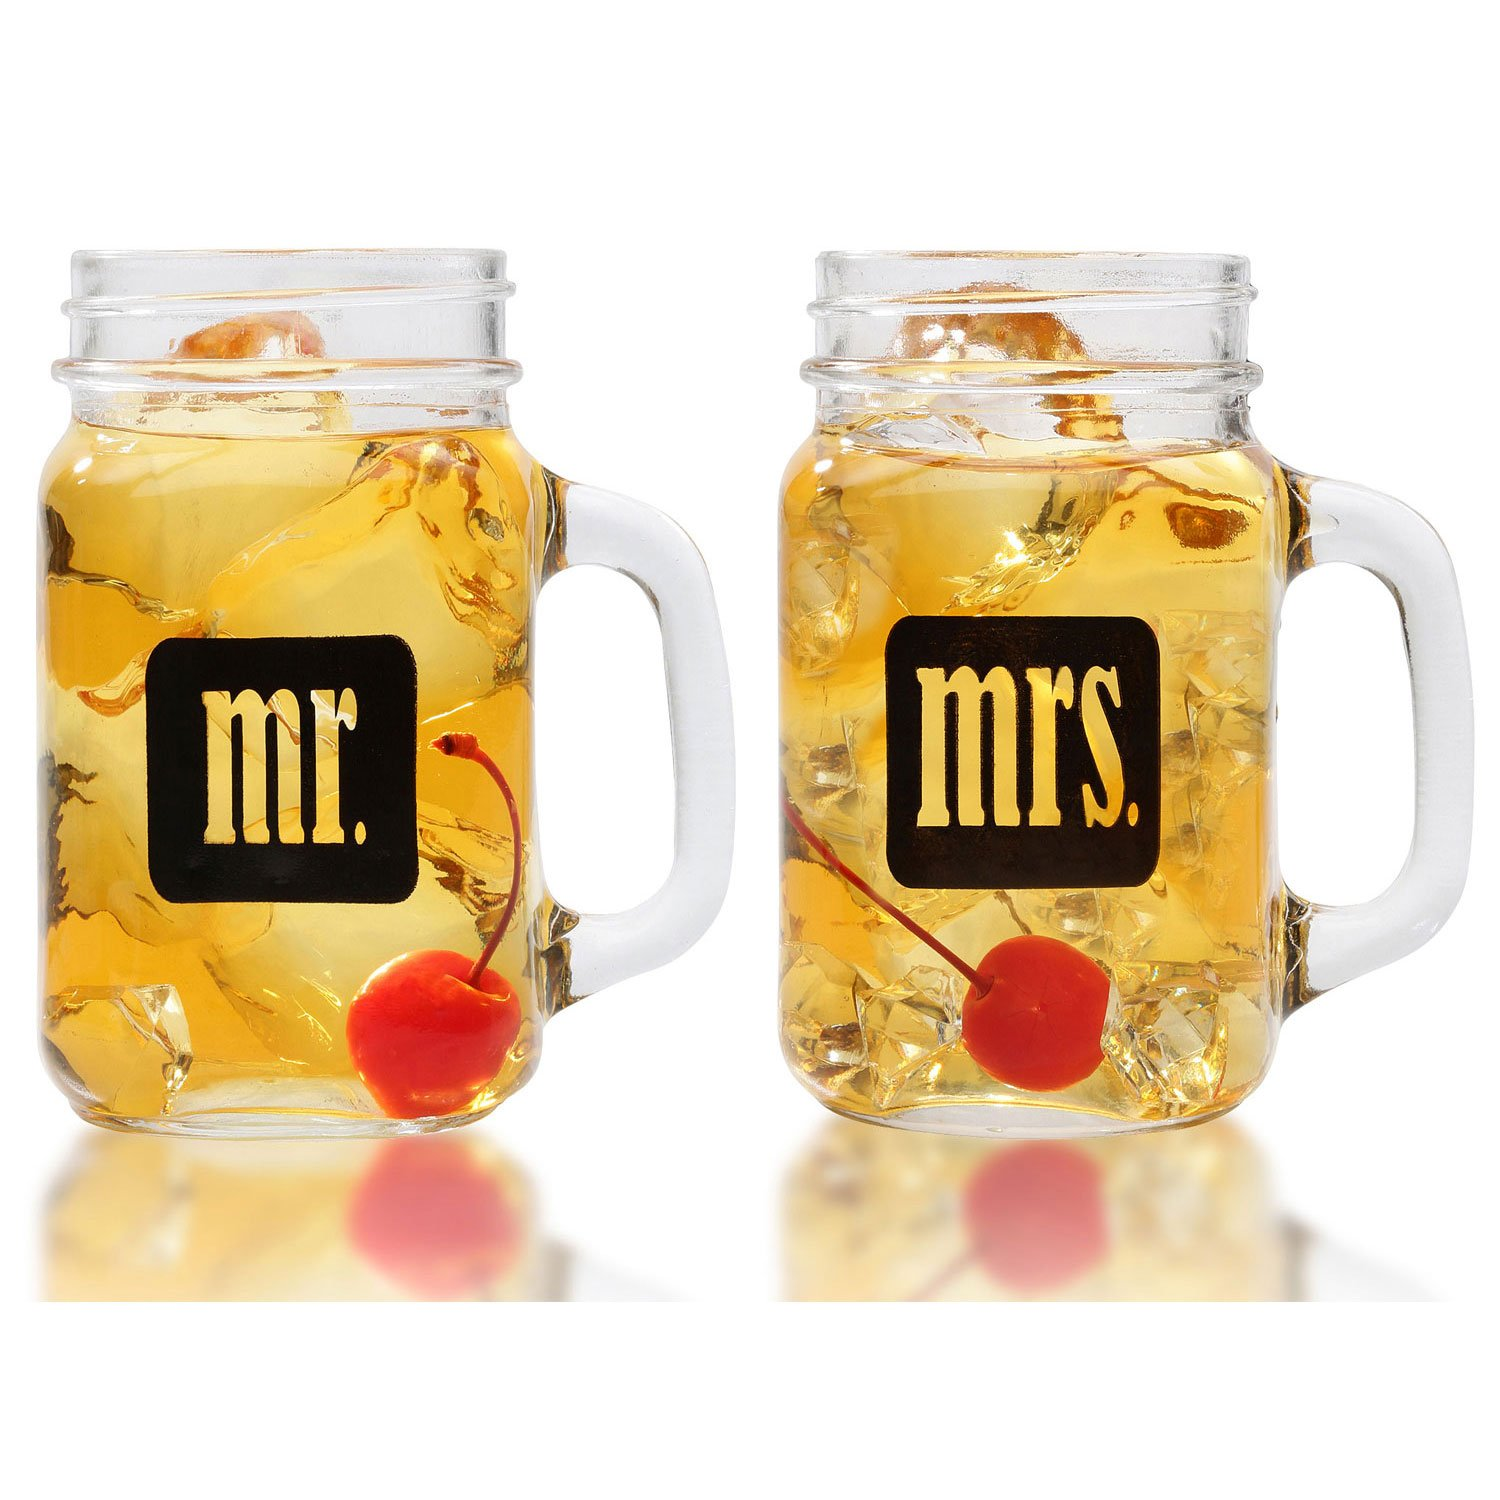 Mr. & Mrs. Mason Jars - Glass Drinking Glasses Set With Gift Box - For Couples - Engagement, Wedding, Anniversary, House Warming, Hostess Gift, 16 oz by Smart Tart Design (Image #1)